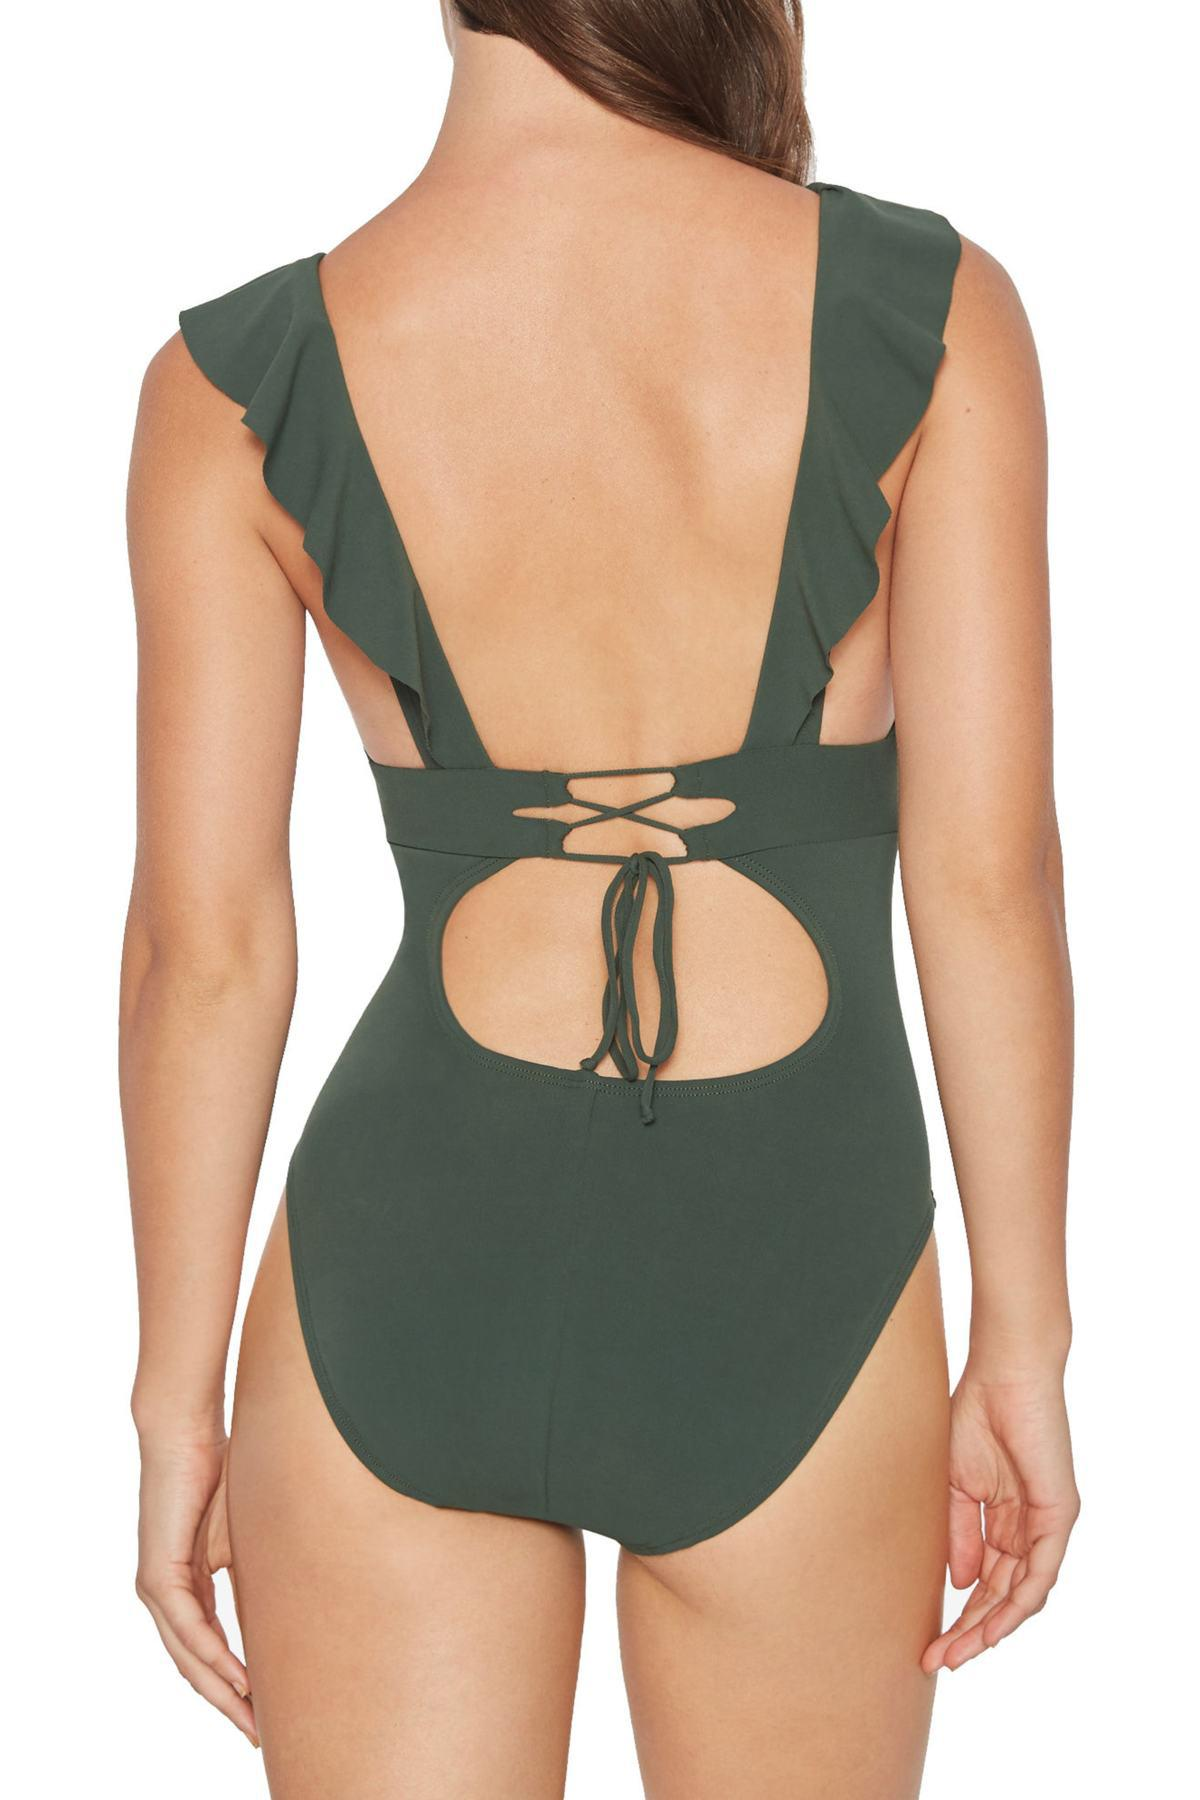 2aeed1ba5517b Robin Piccone - Green Ruffle One-piece Swimsuit - Lyst. View fullscreen